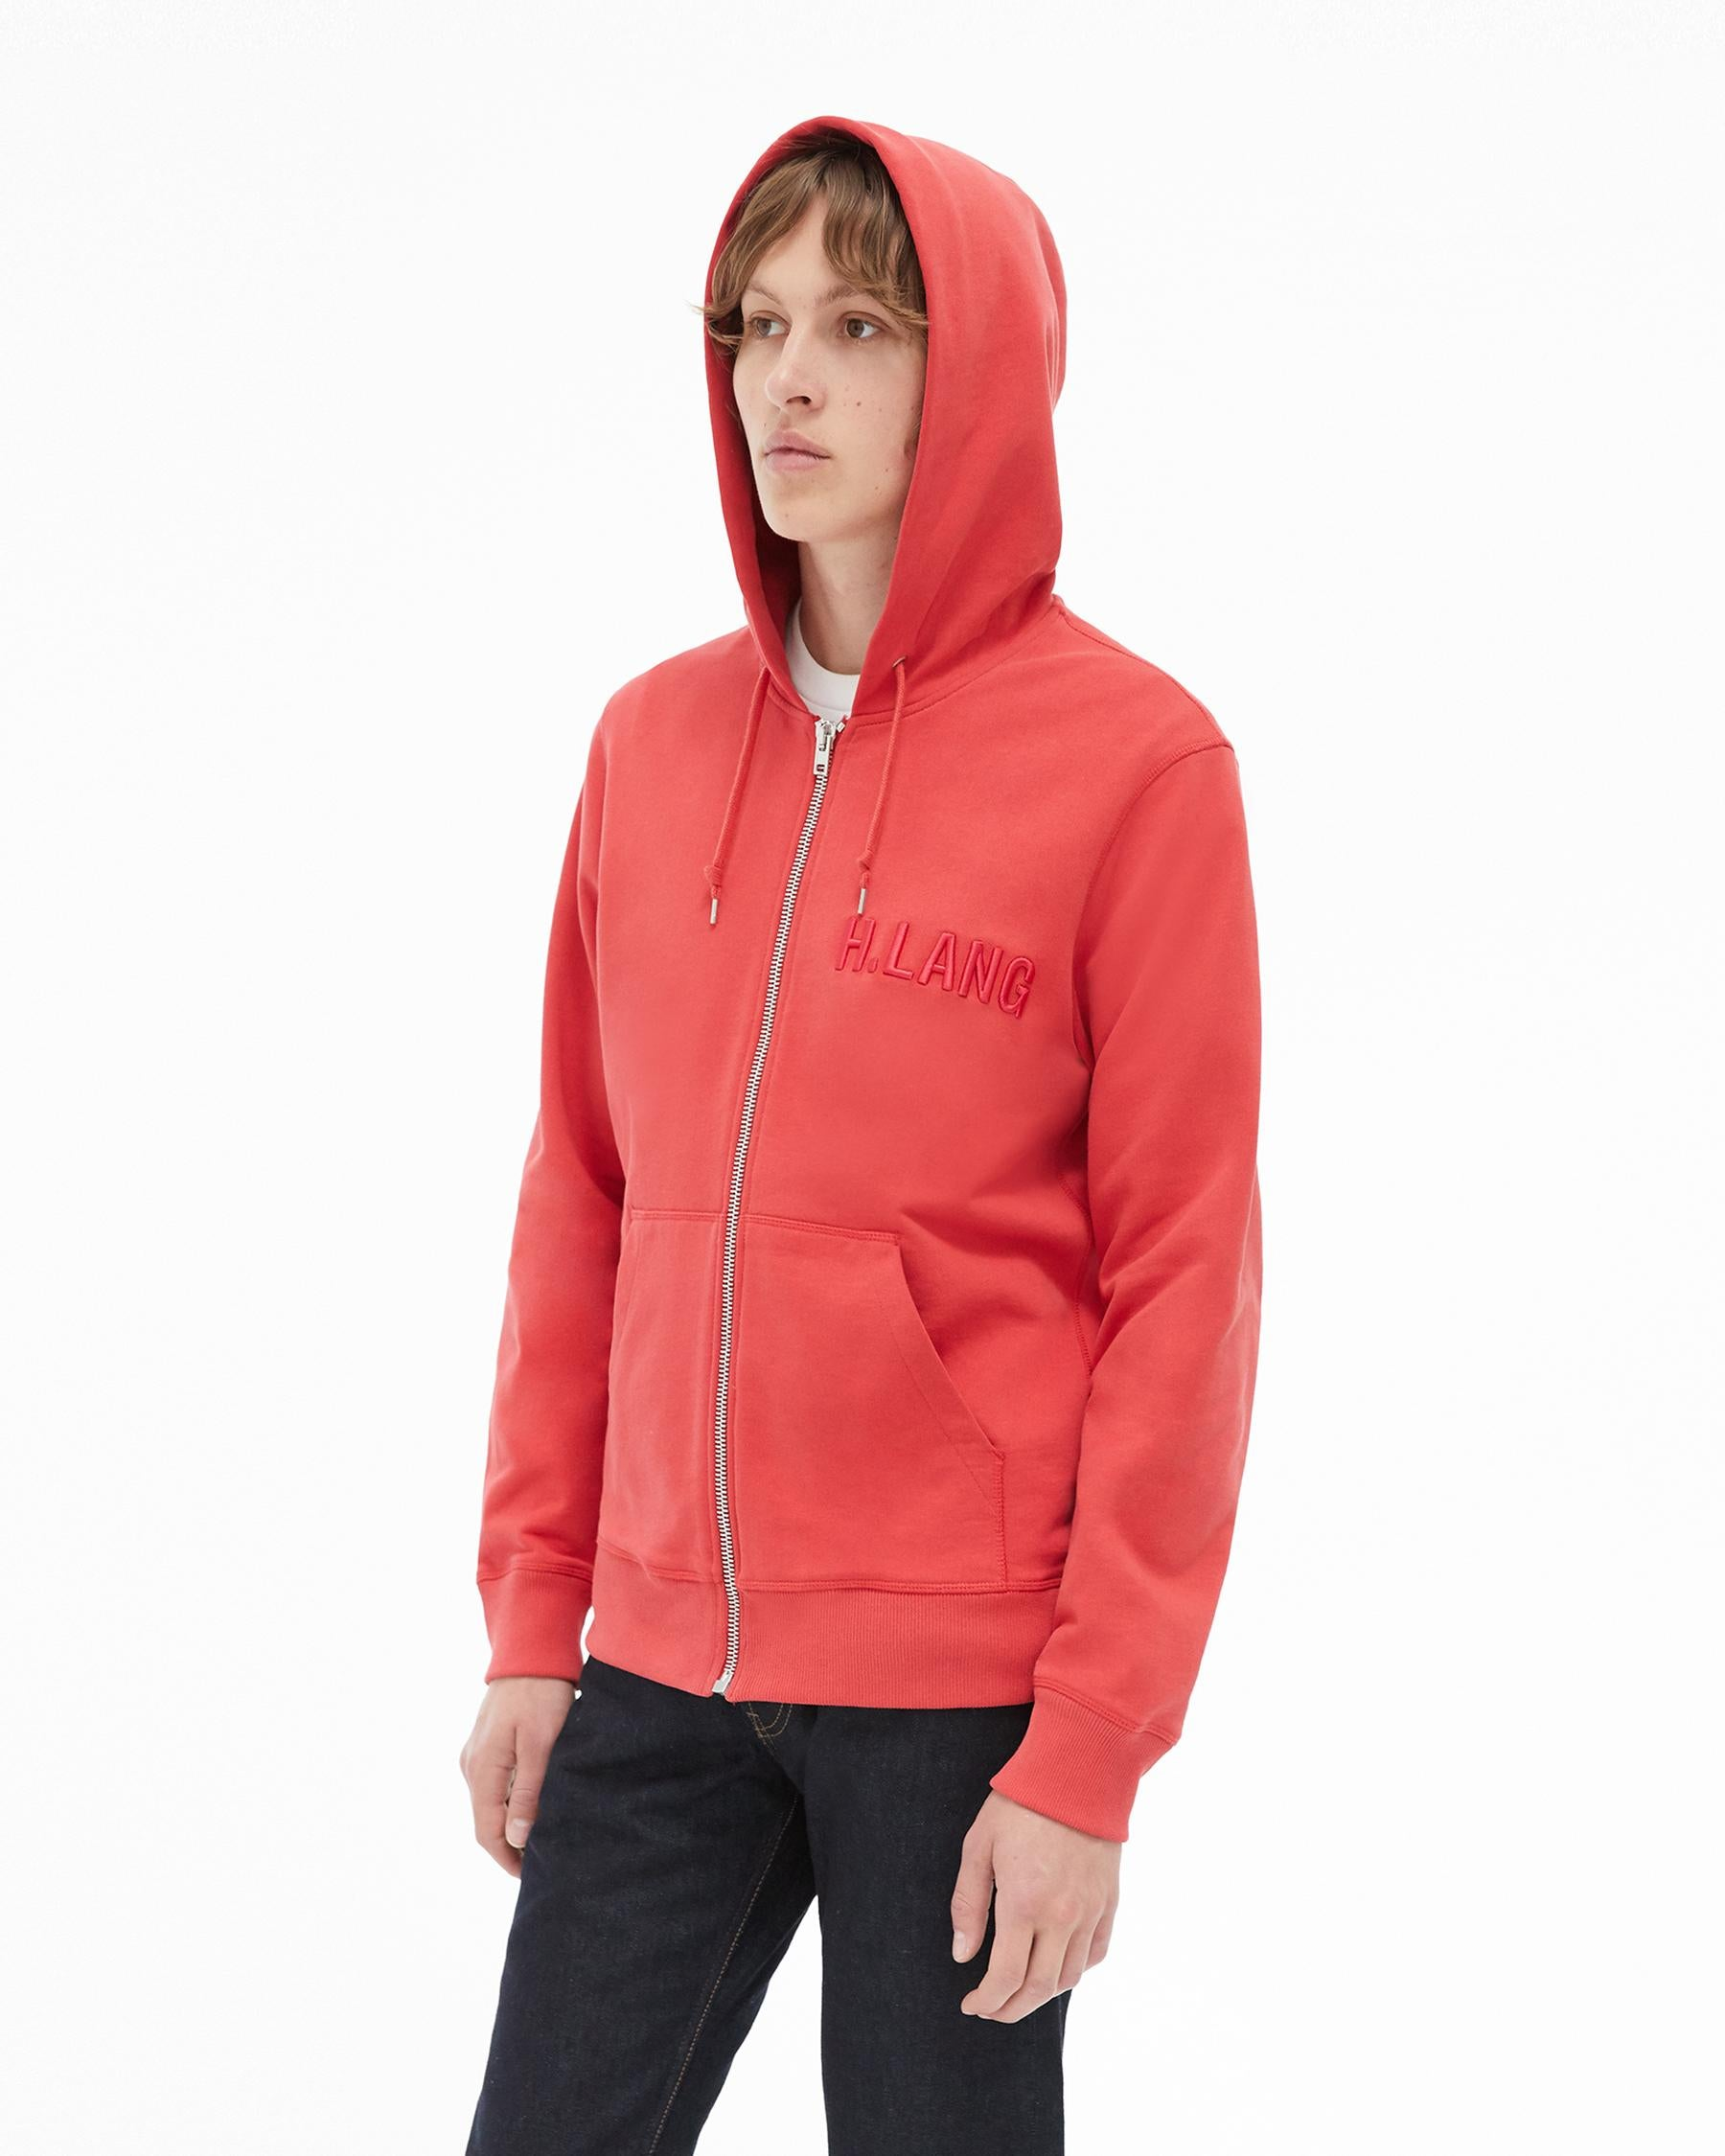 Standard Zipped Hoodie (Oxidised Red) OUTER HELMUT LANG - NOLM - Clothes Online - nolmau.com - Sydney-Australia Online Shopping